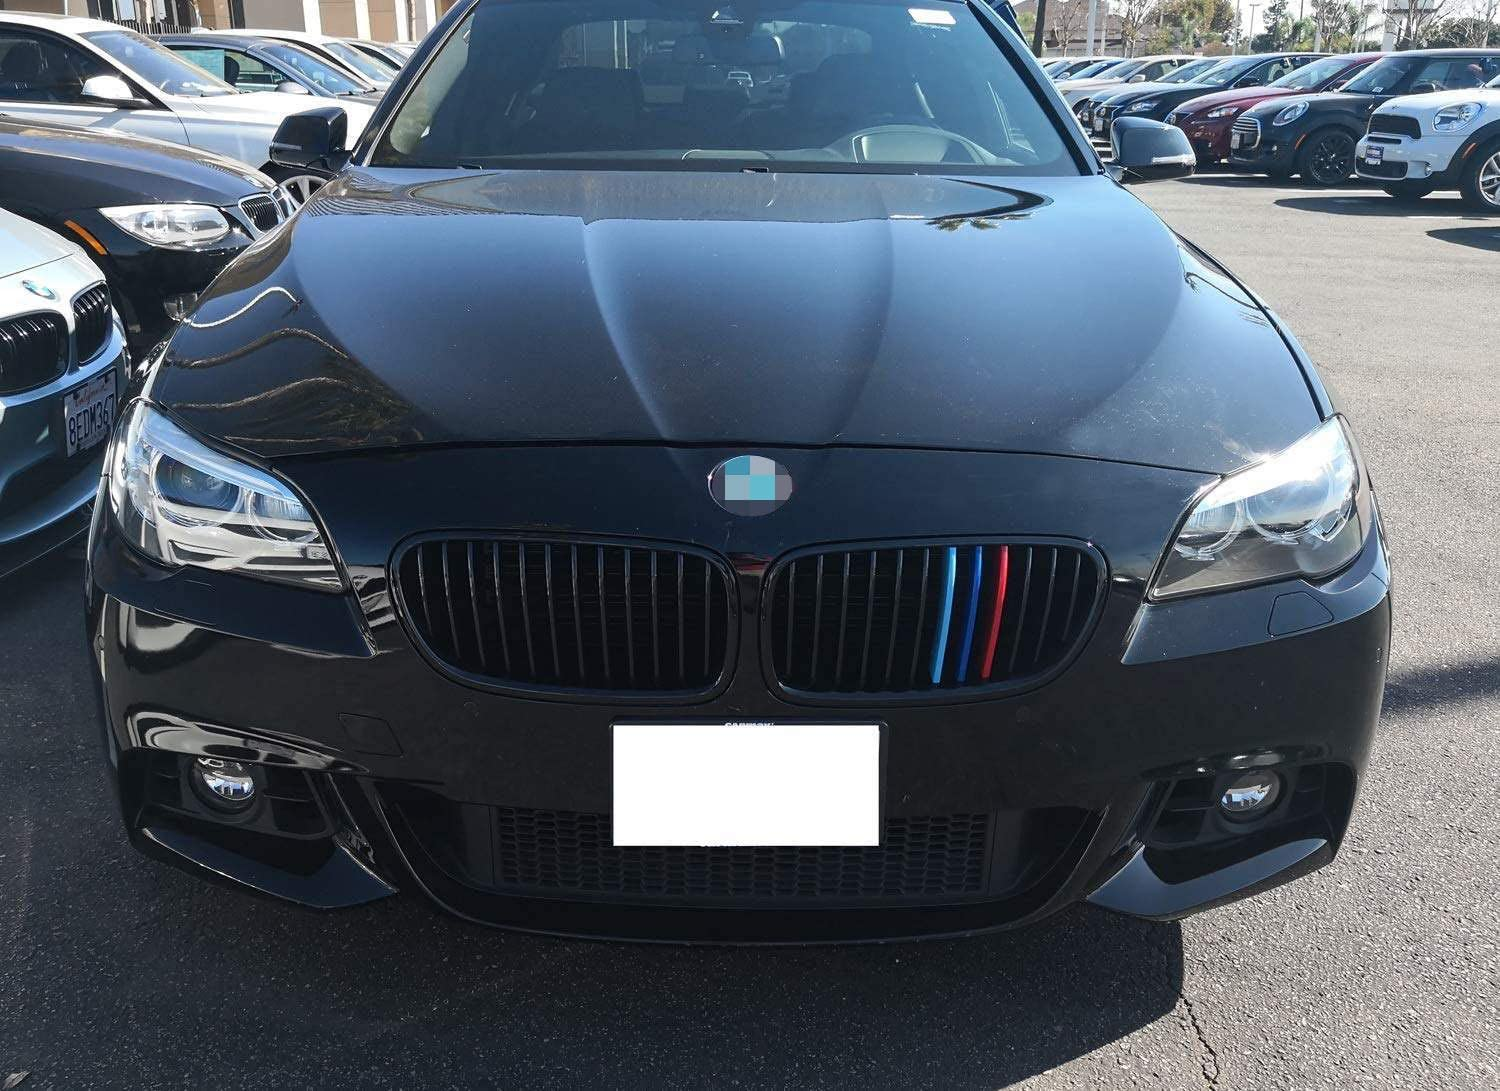 12 Beams iJDMTOY Exact Fit //////M-Colored Grille Insert Trims Compatible With 2010-2016 BMW F10 F11 5 Series 528i 535i 550i with M-Performance Black Kidney Grill